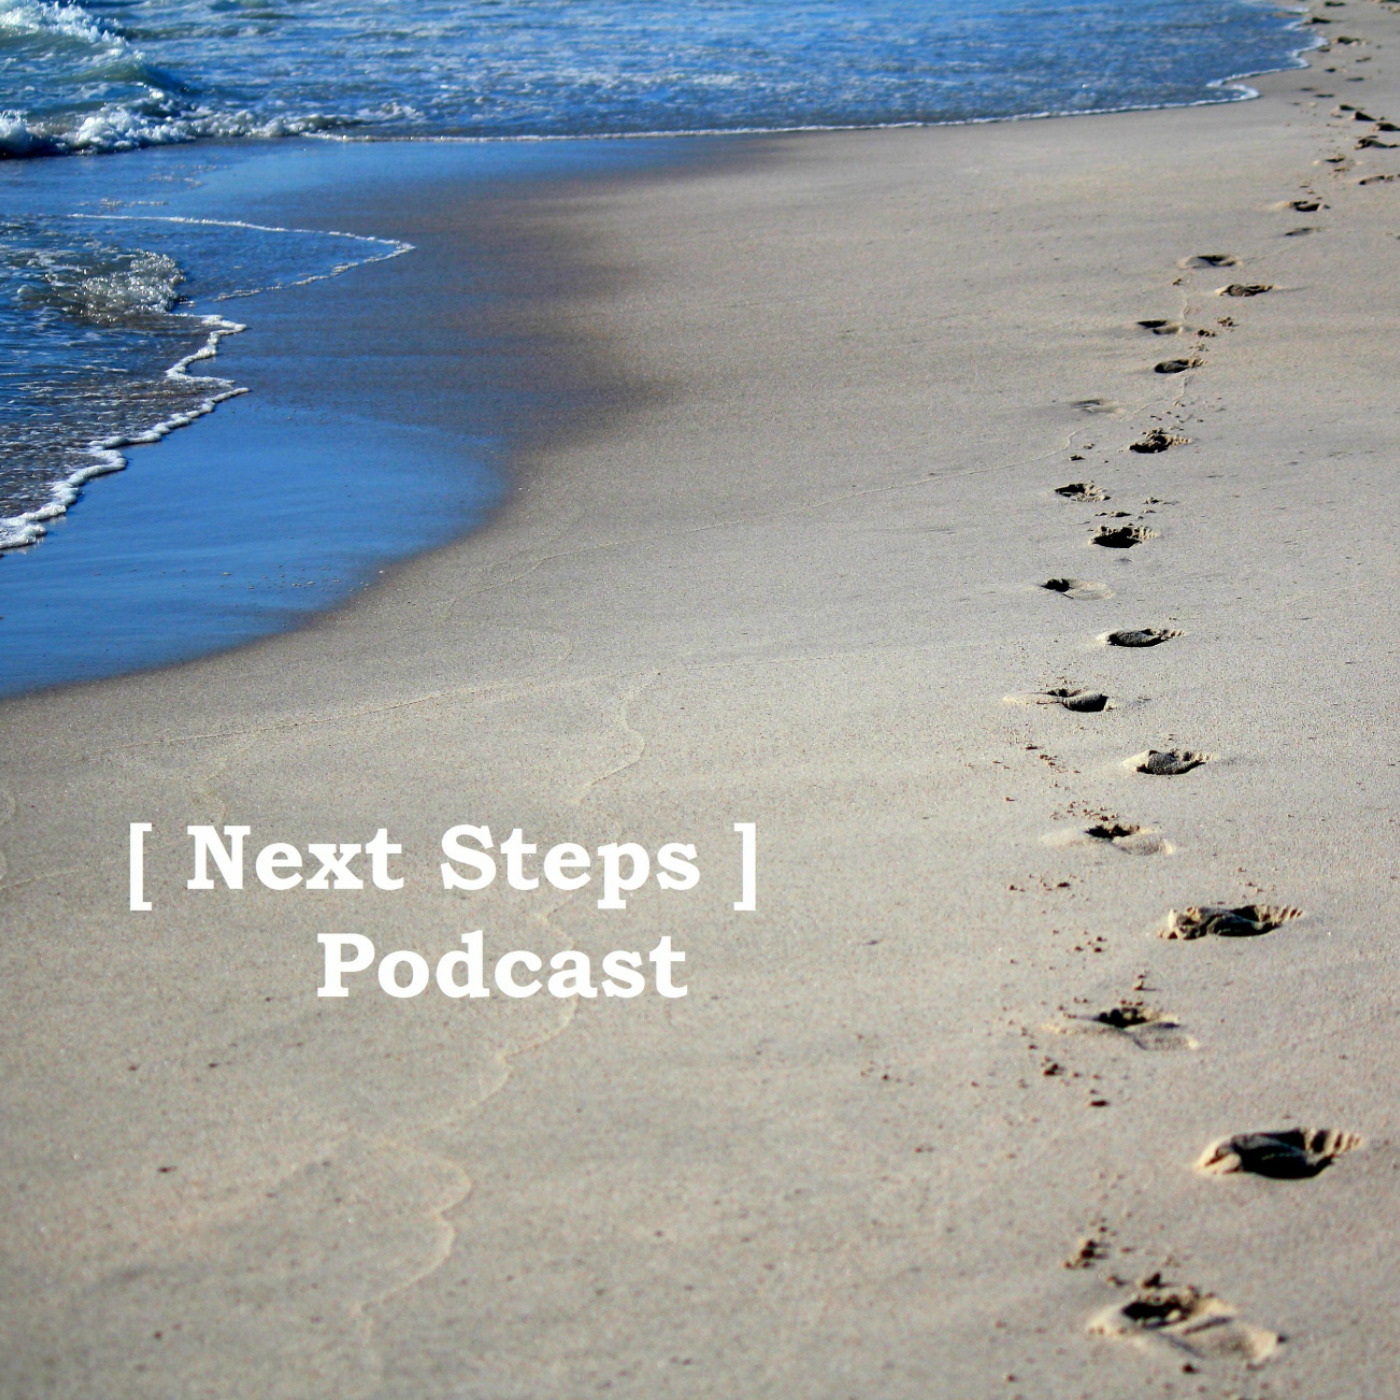 Next Steps Podcast